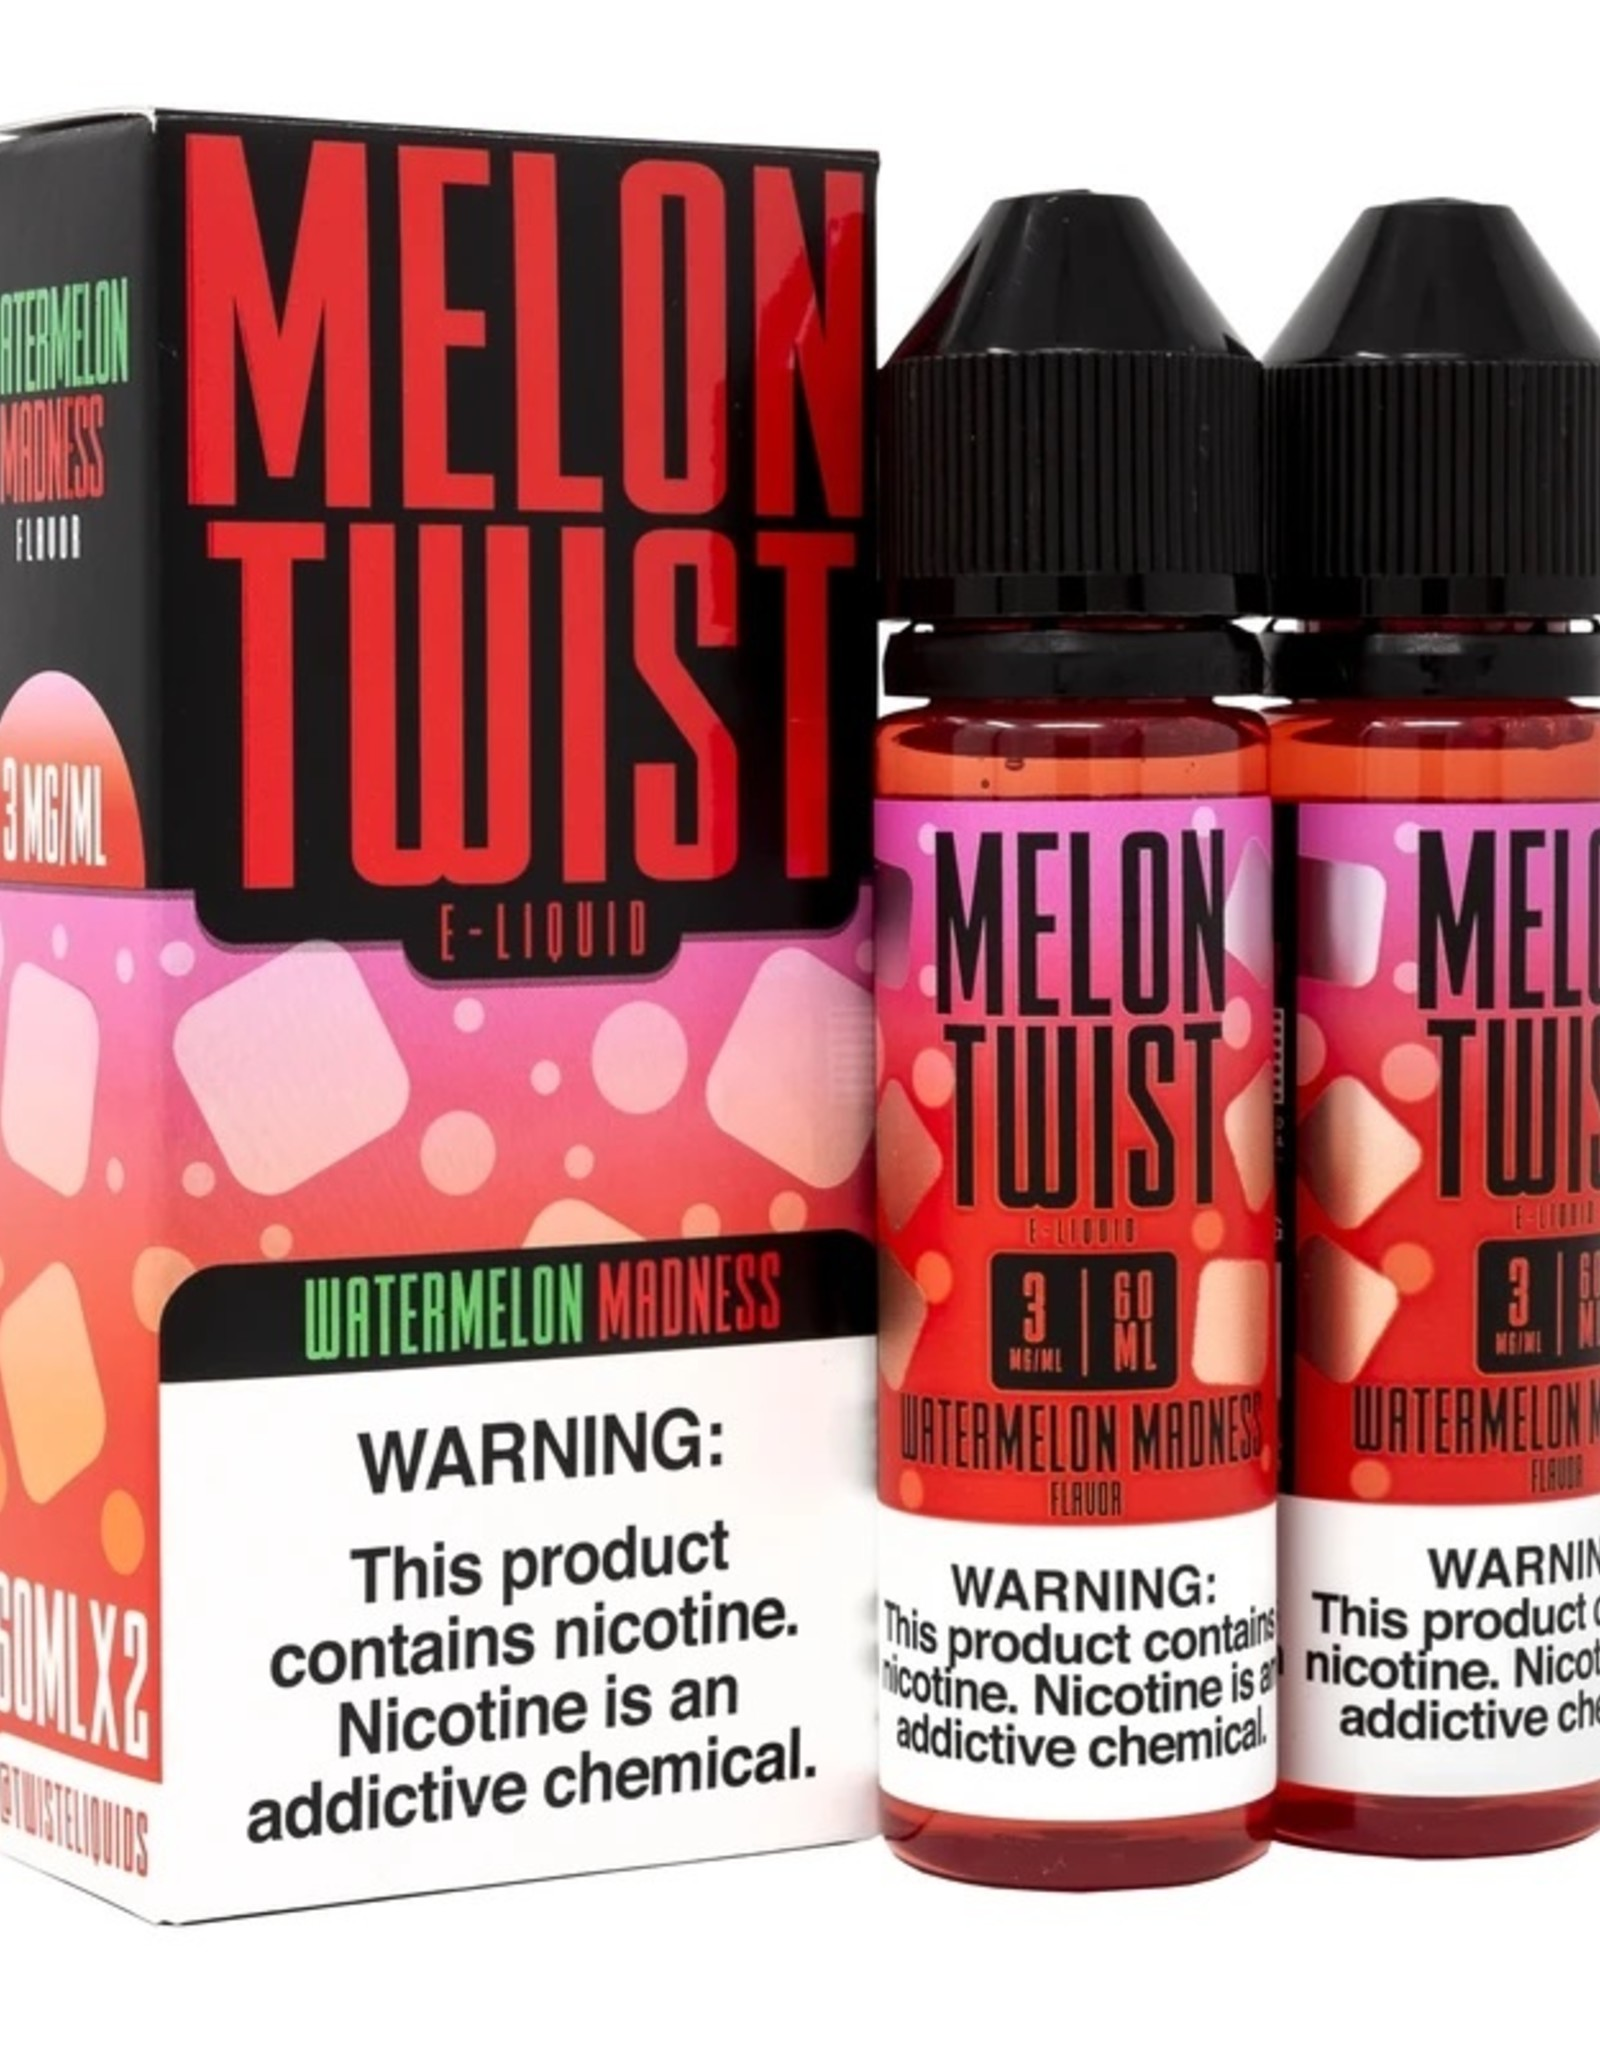 Melon Twist Watermelon Madness By Melon Twist